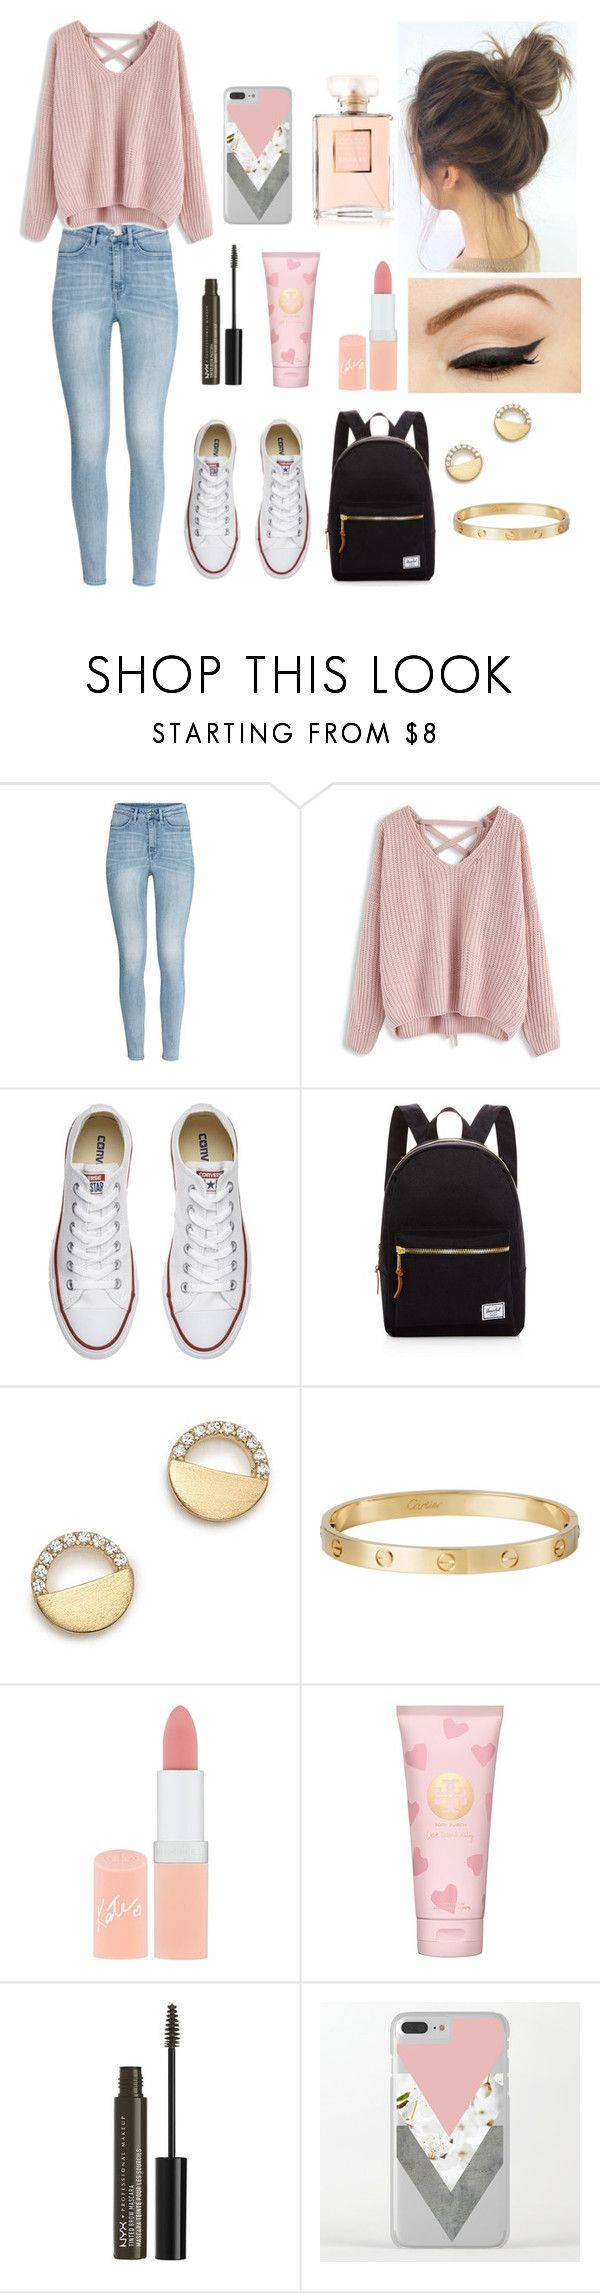 """""""Lazy School outfit"""" by pinkj3w3l ❤ liked on Polyvore featuring H&M, Chicwish, Converse, Anatomy Of, Herschel Supply Co., Bloomingdale's, Cartier, Rimmel, Tory Burch and NYX"""